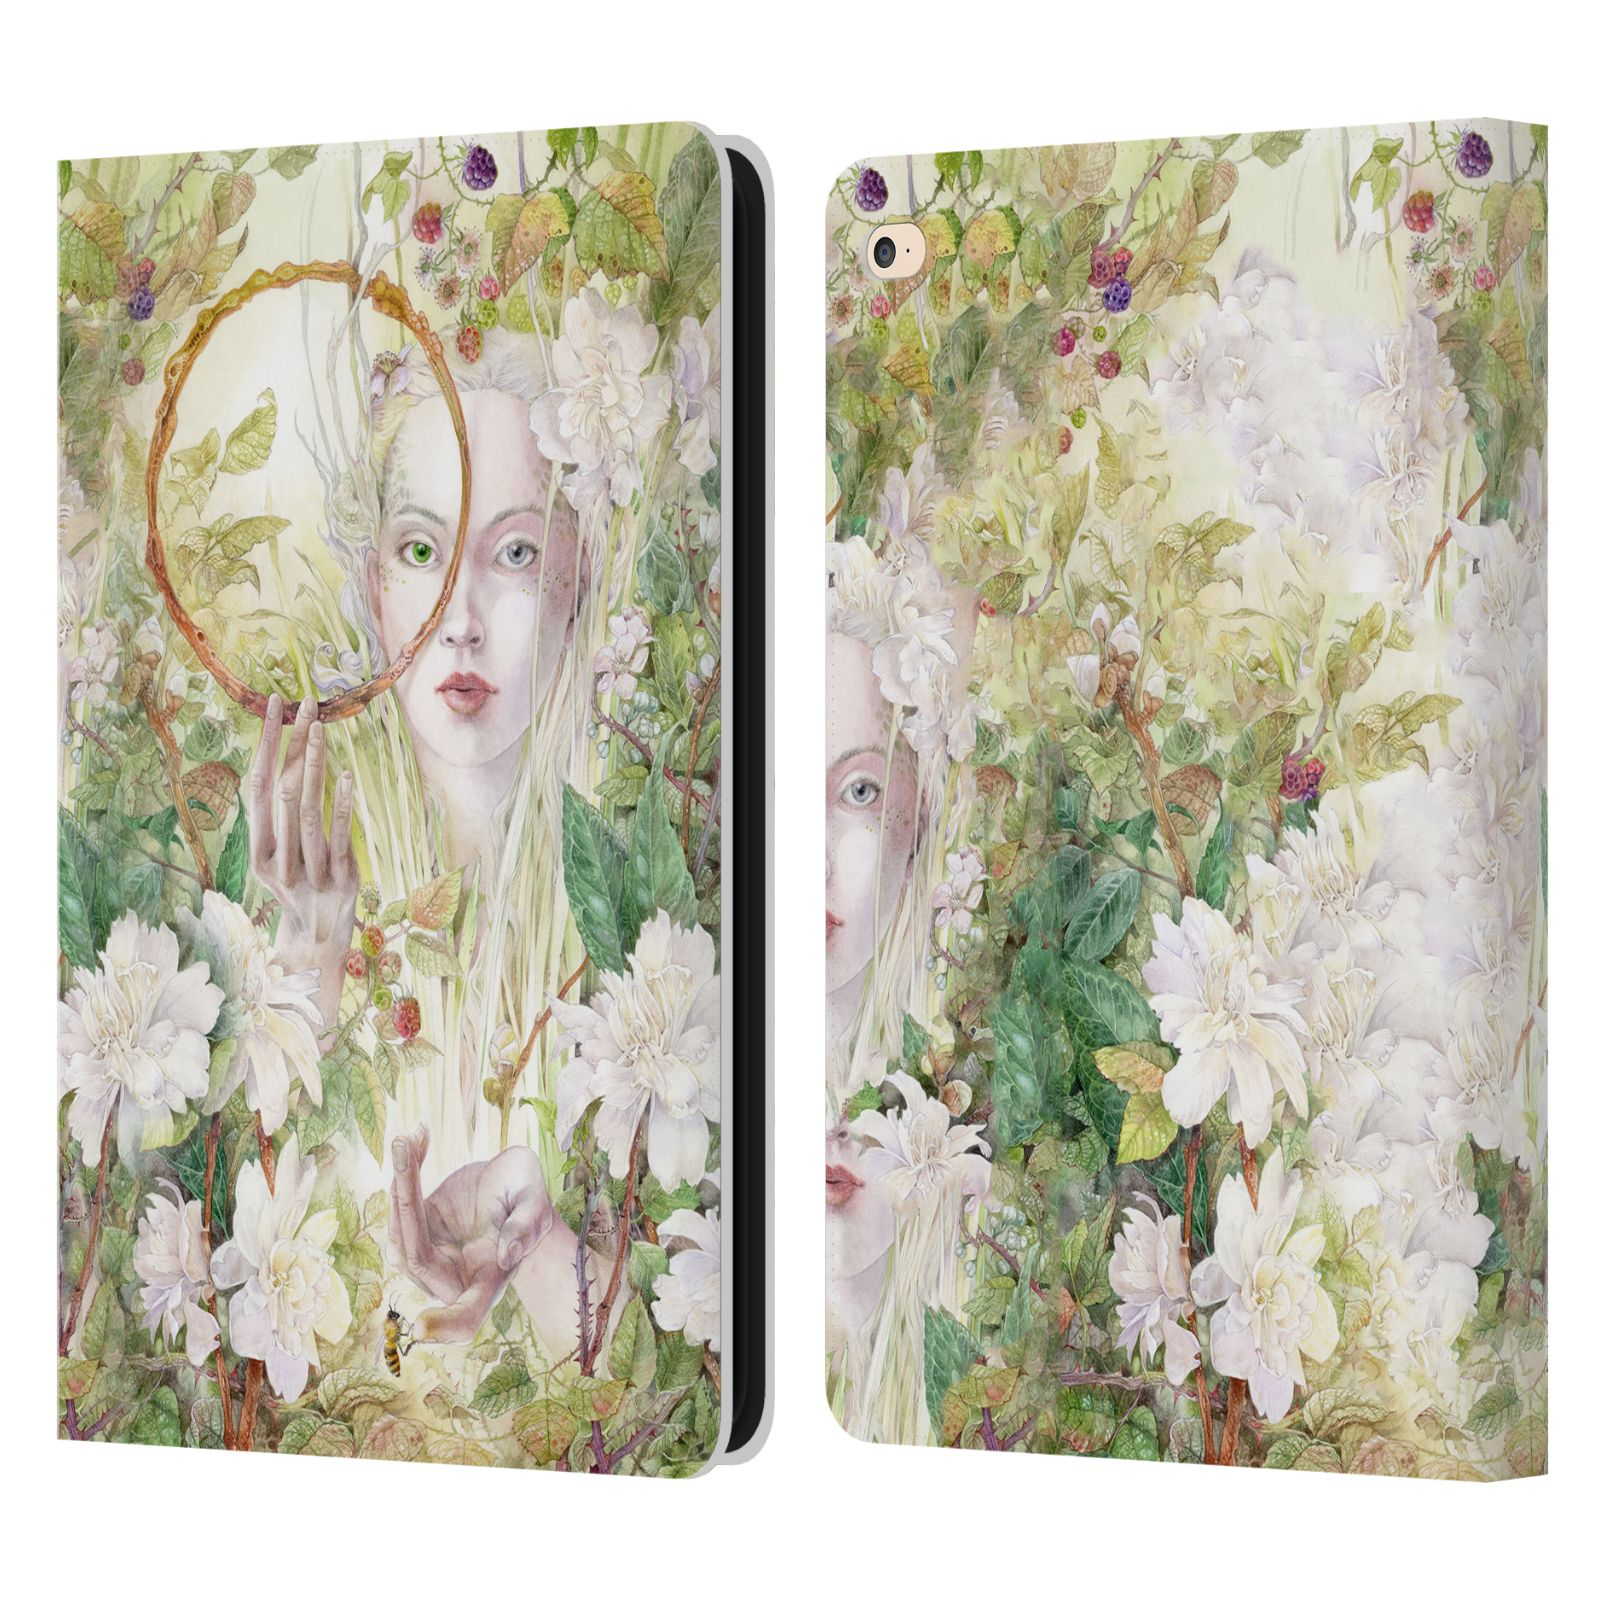 OFICIAL-STEPHANIE-LAW-FAERIES-CASO-LIBRO-MONEDERO-DE-CUERO-PARA-APPLE-iPAD